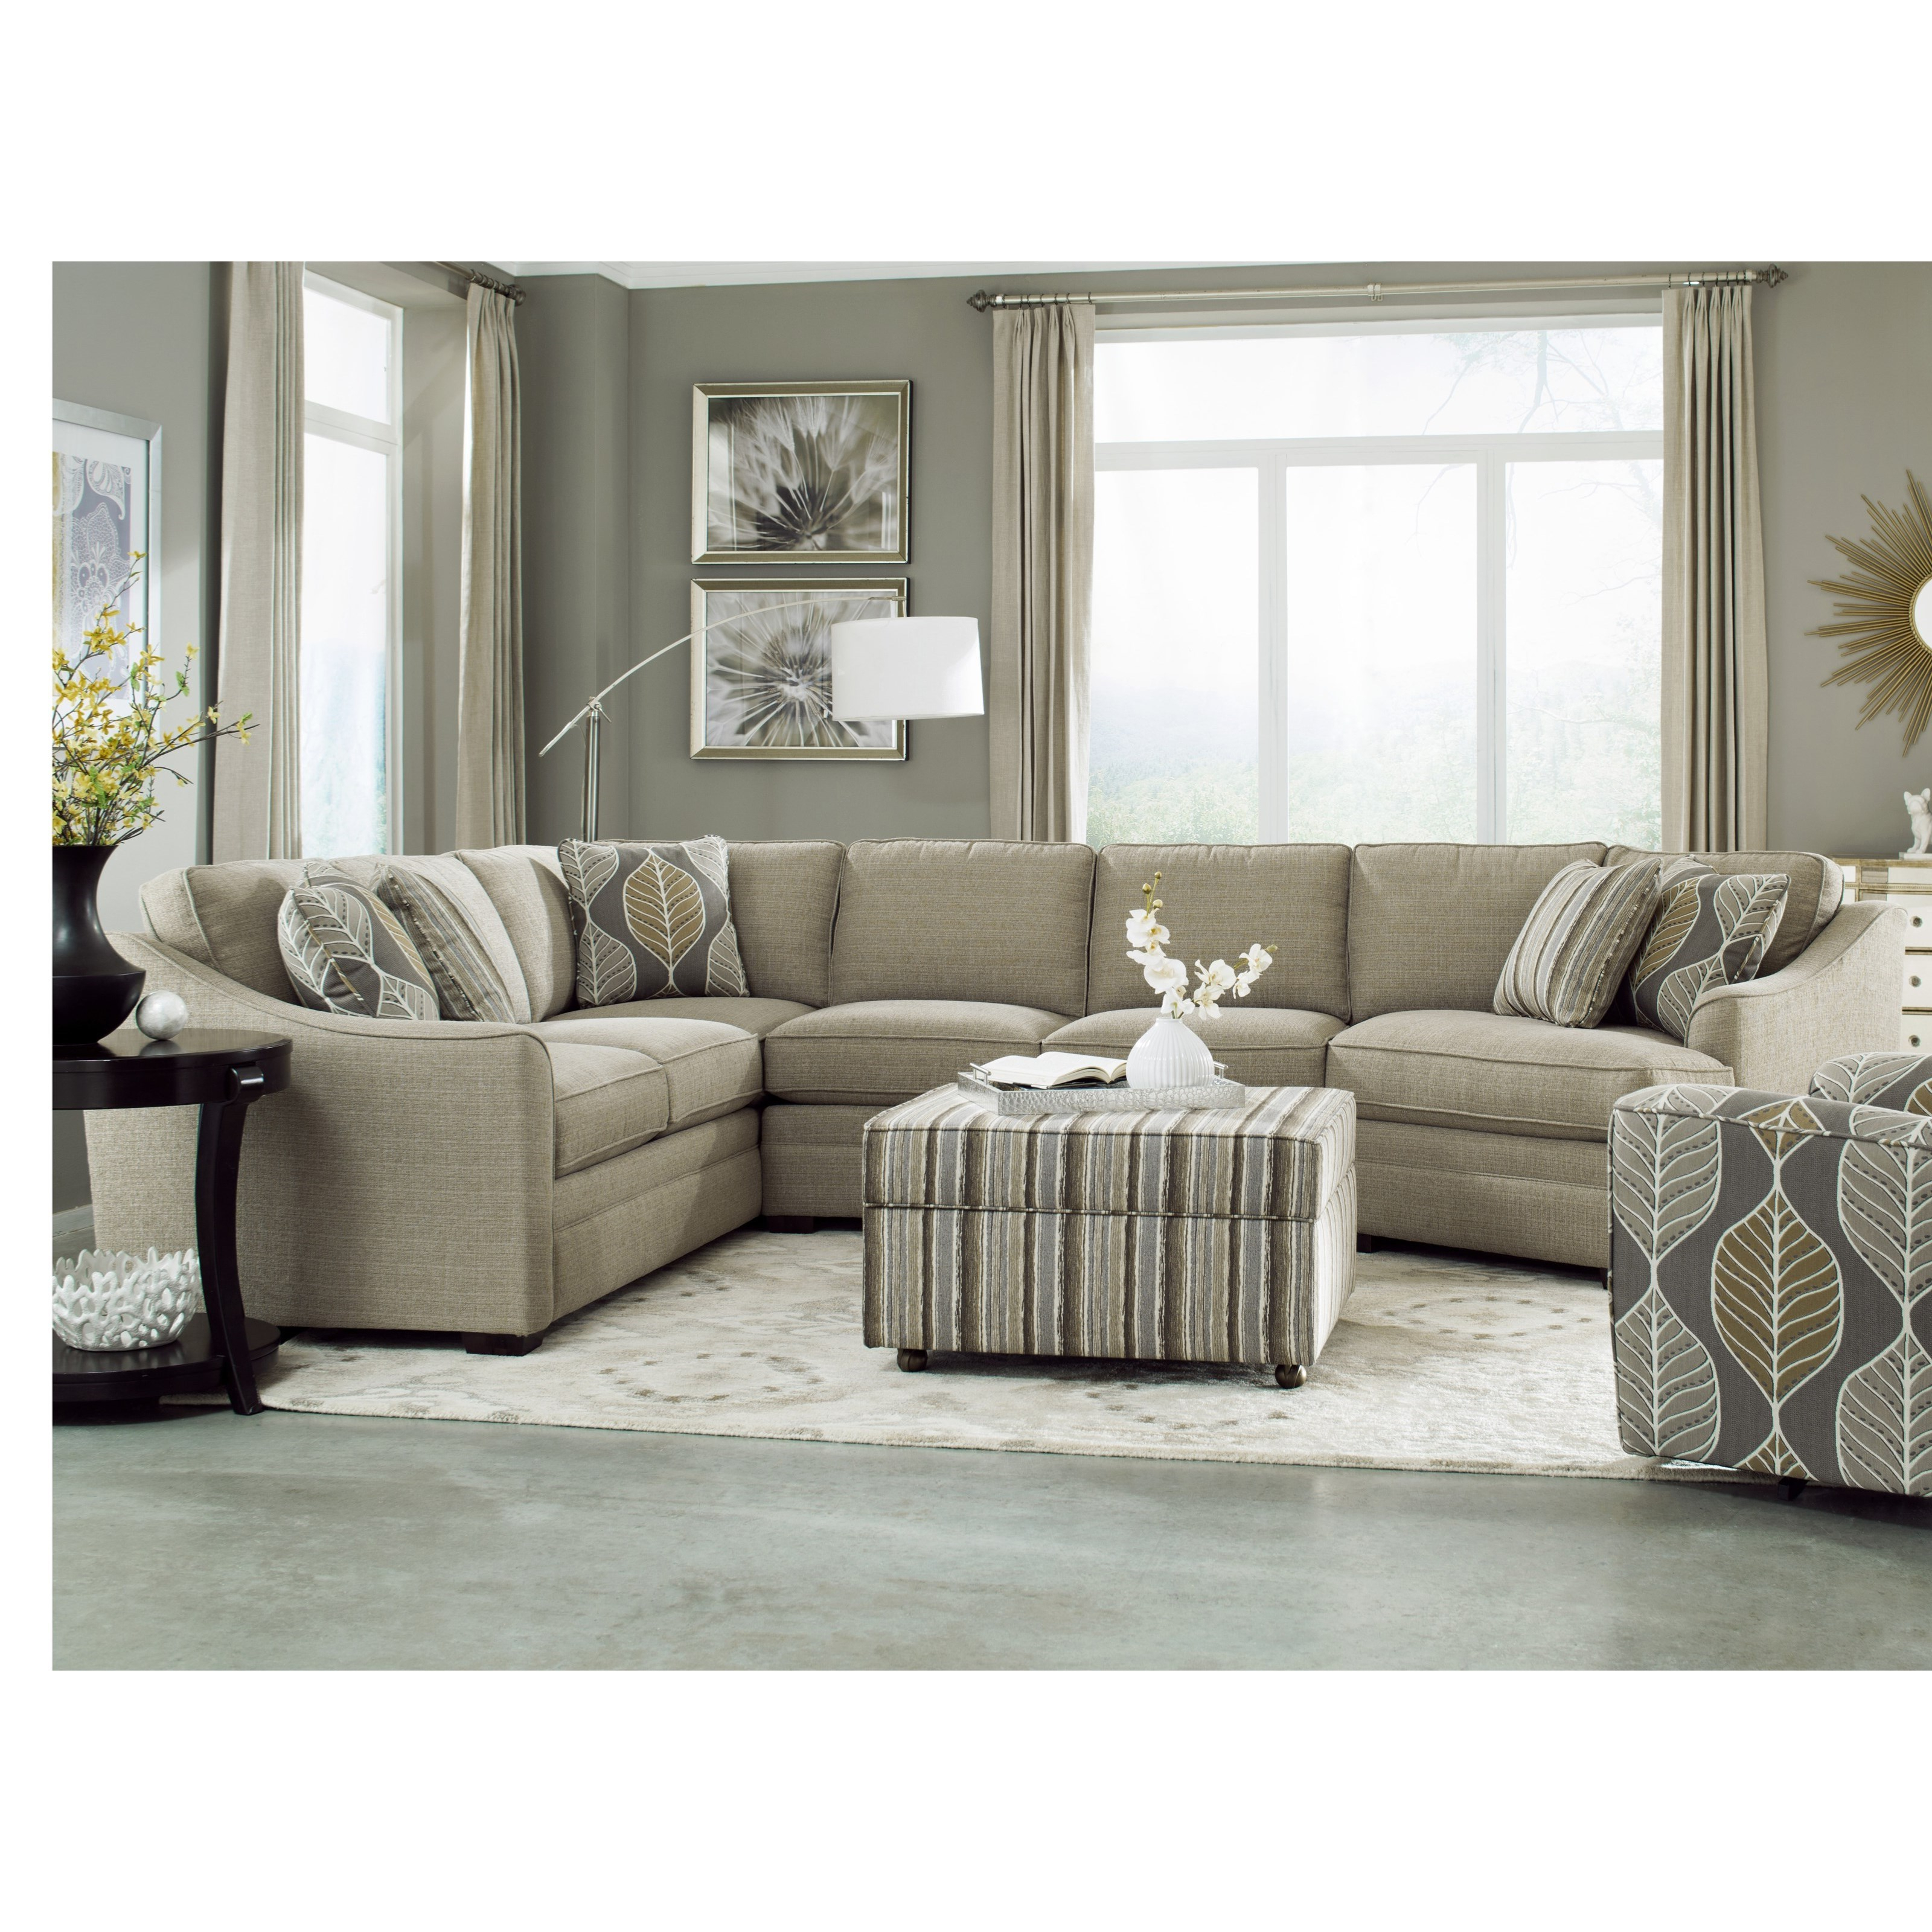 Tatum Dark Grey 2 Piece Sectionals With Laf Chaise Inside Well Known Hickory Craft F9 Custom Collection <b>customizable</b> 3 Piece (View 17 of 20)